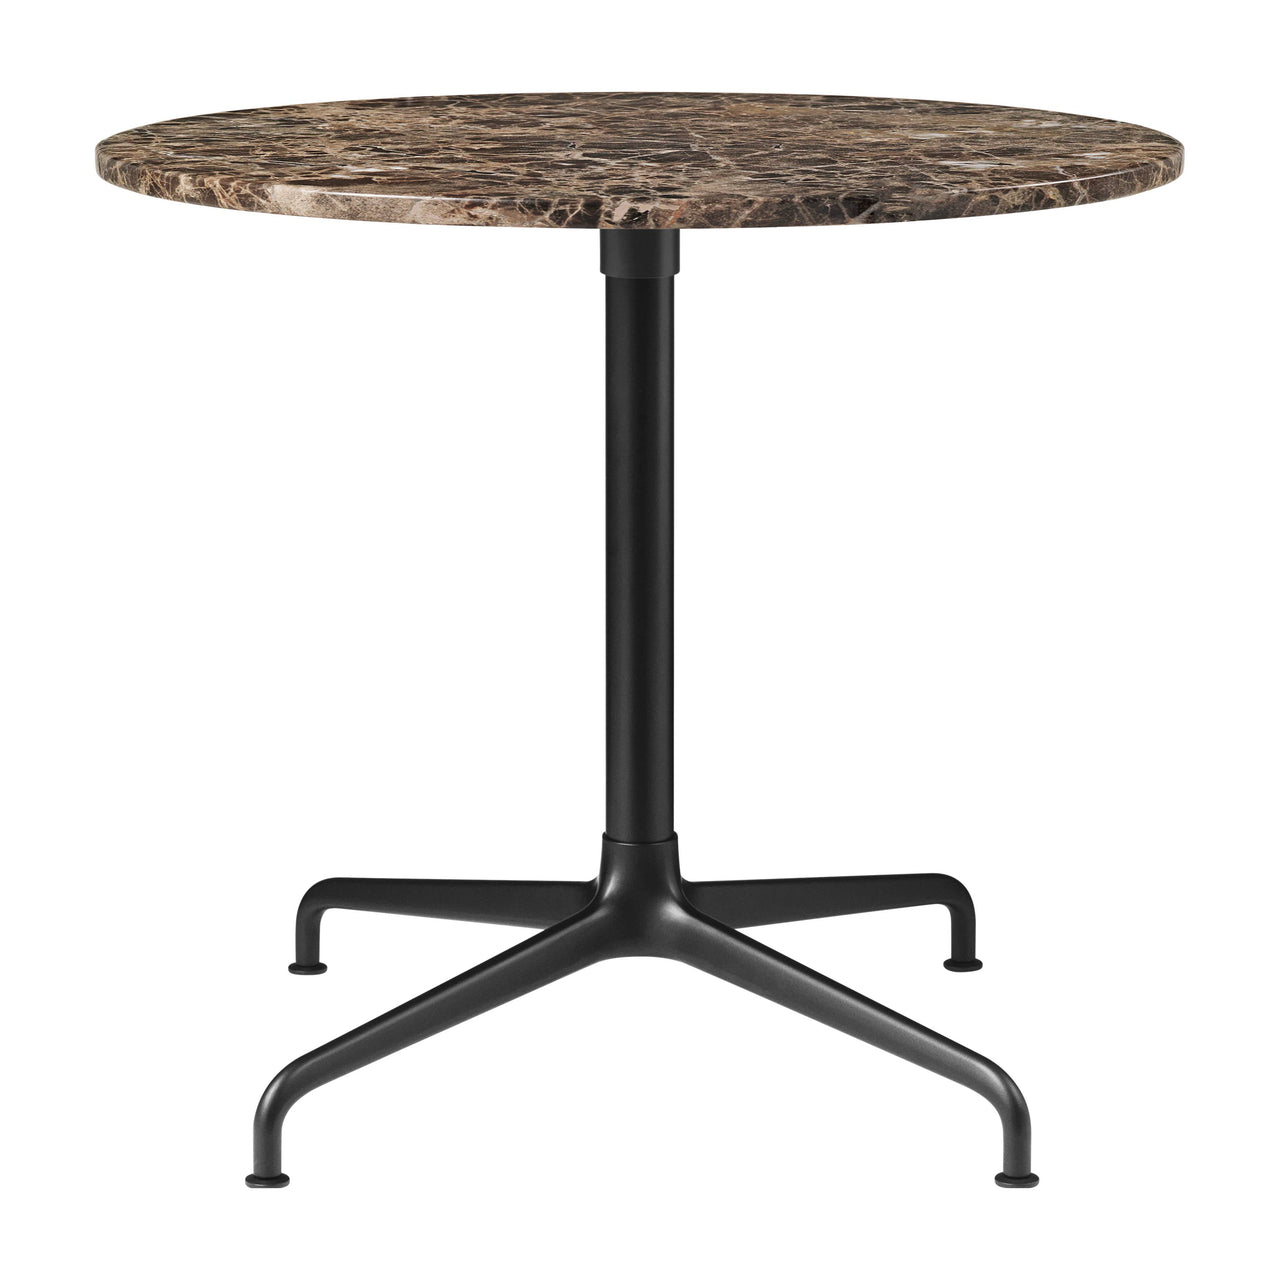 Beetle Lounge Table: Round + Small + Brown Emperador Marble + Black Matte Base